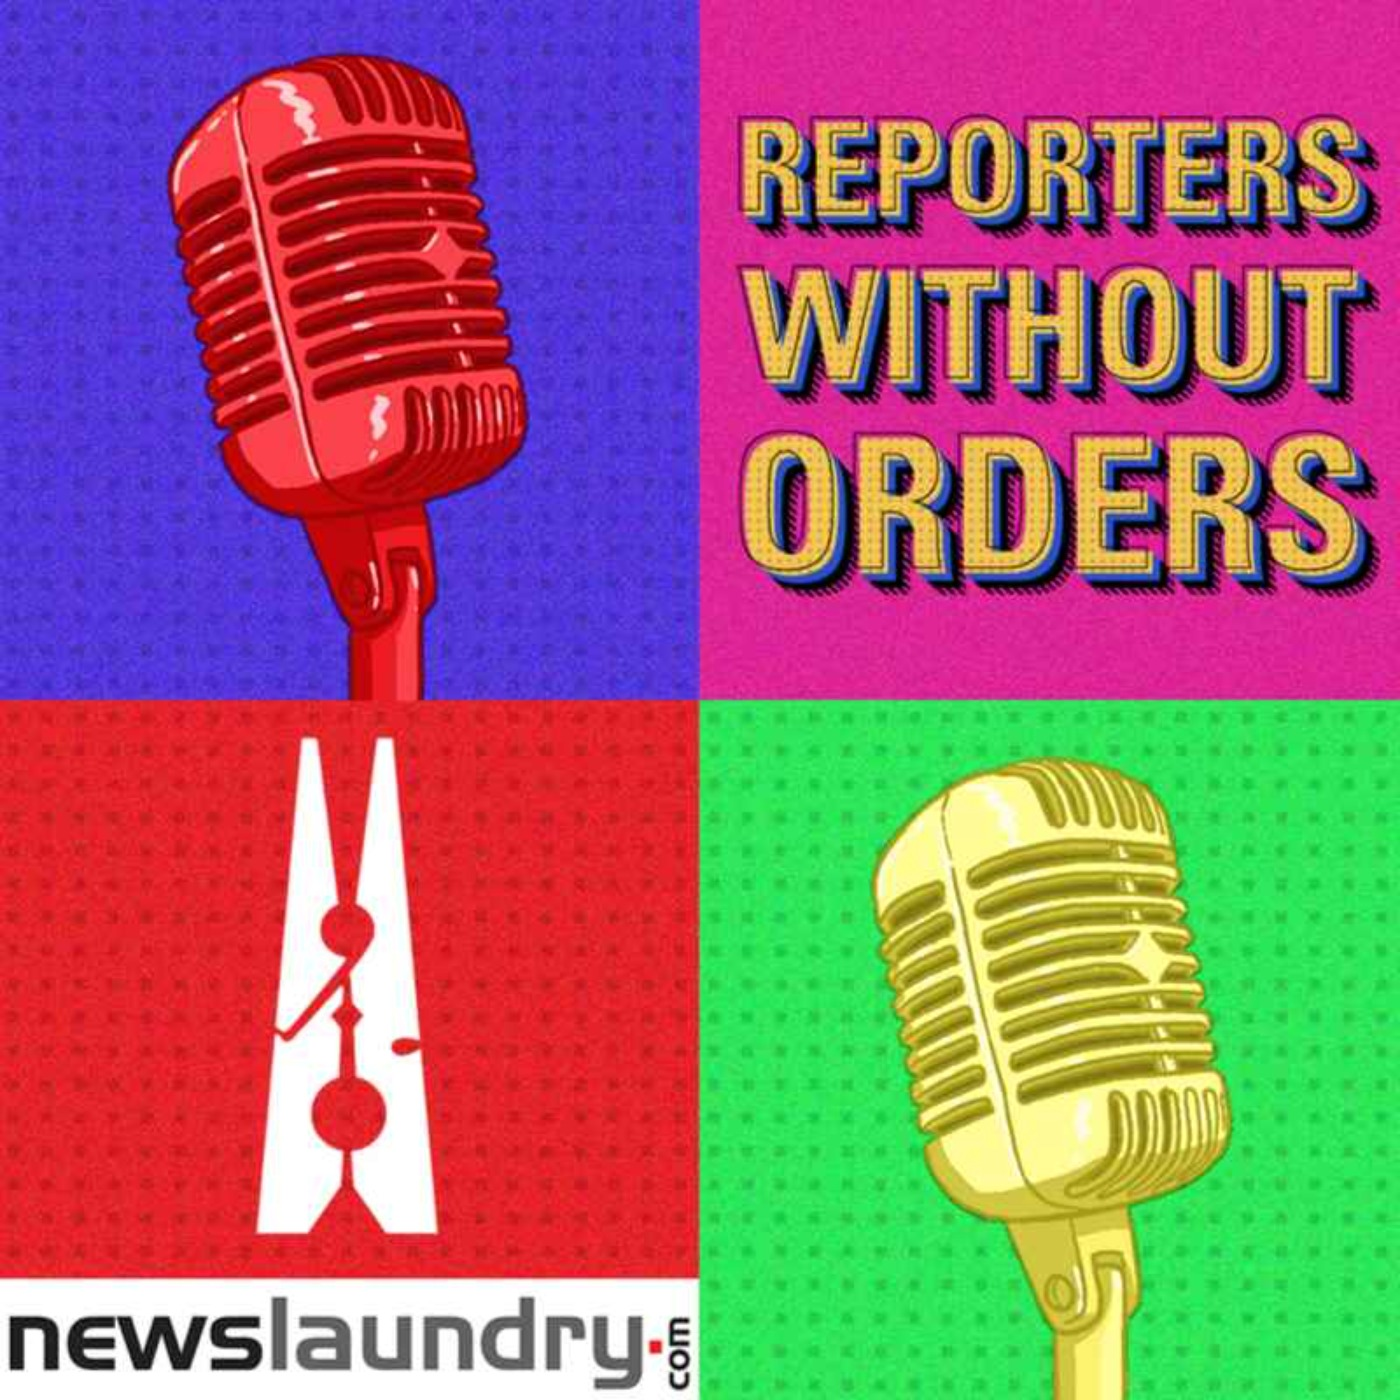 Reporters Without Orders Ep 164: Covid crisis in Uttar Pradesh and Madhya Pradesh